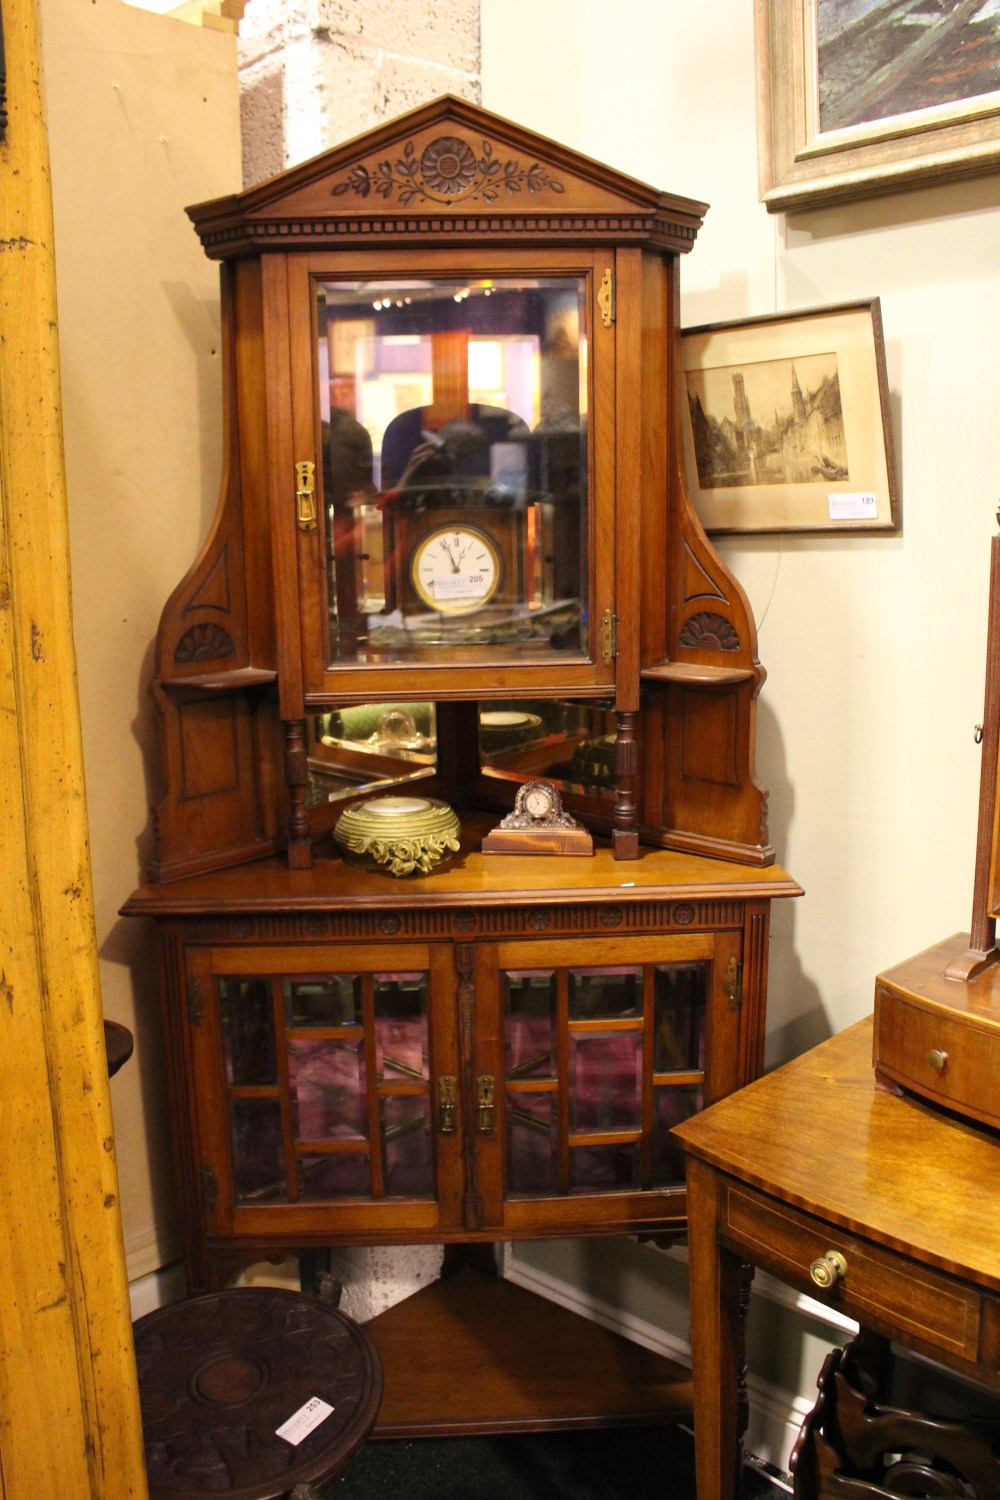 Lot 43 - A VERY FINE EARLY 20TH CENTURY WALNUT CORNER CABINET, with bevelled glazed cabinet over 2 door